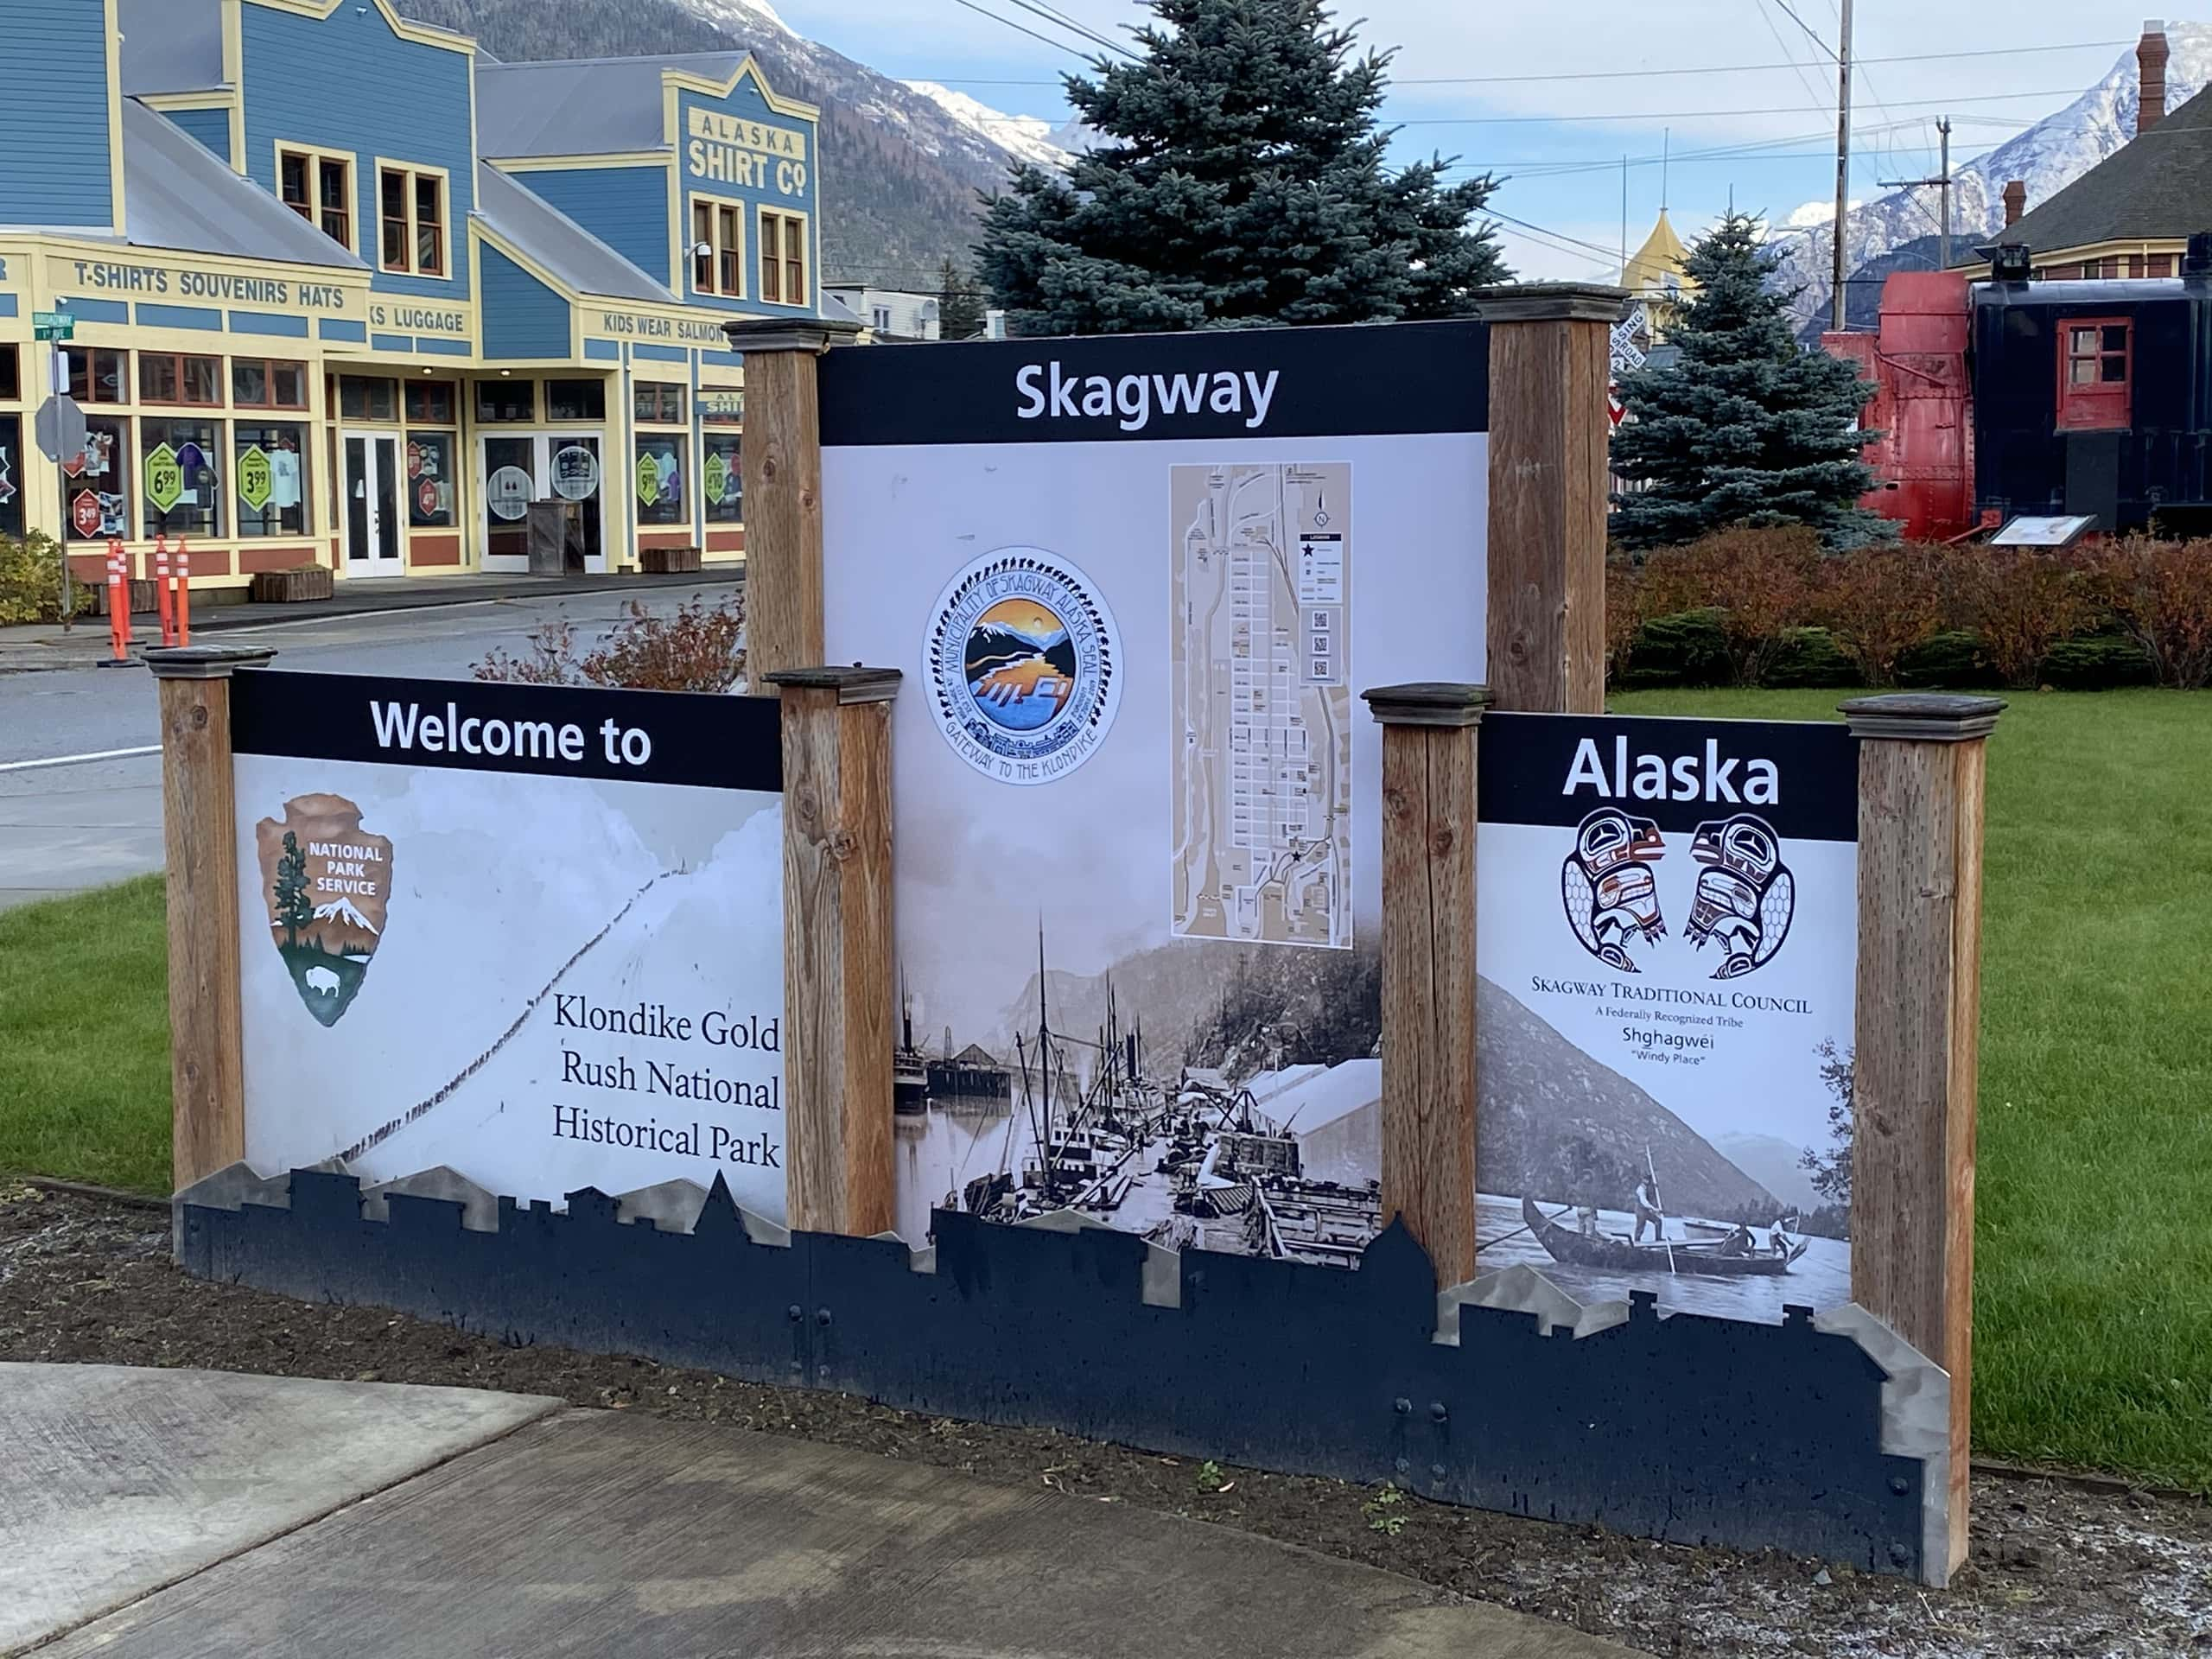 Mayor opens meeting acknowledging Skagway sits on traditional tribal land